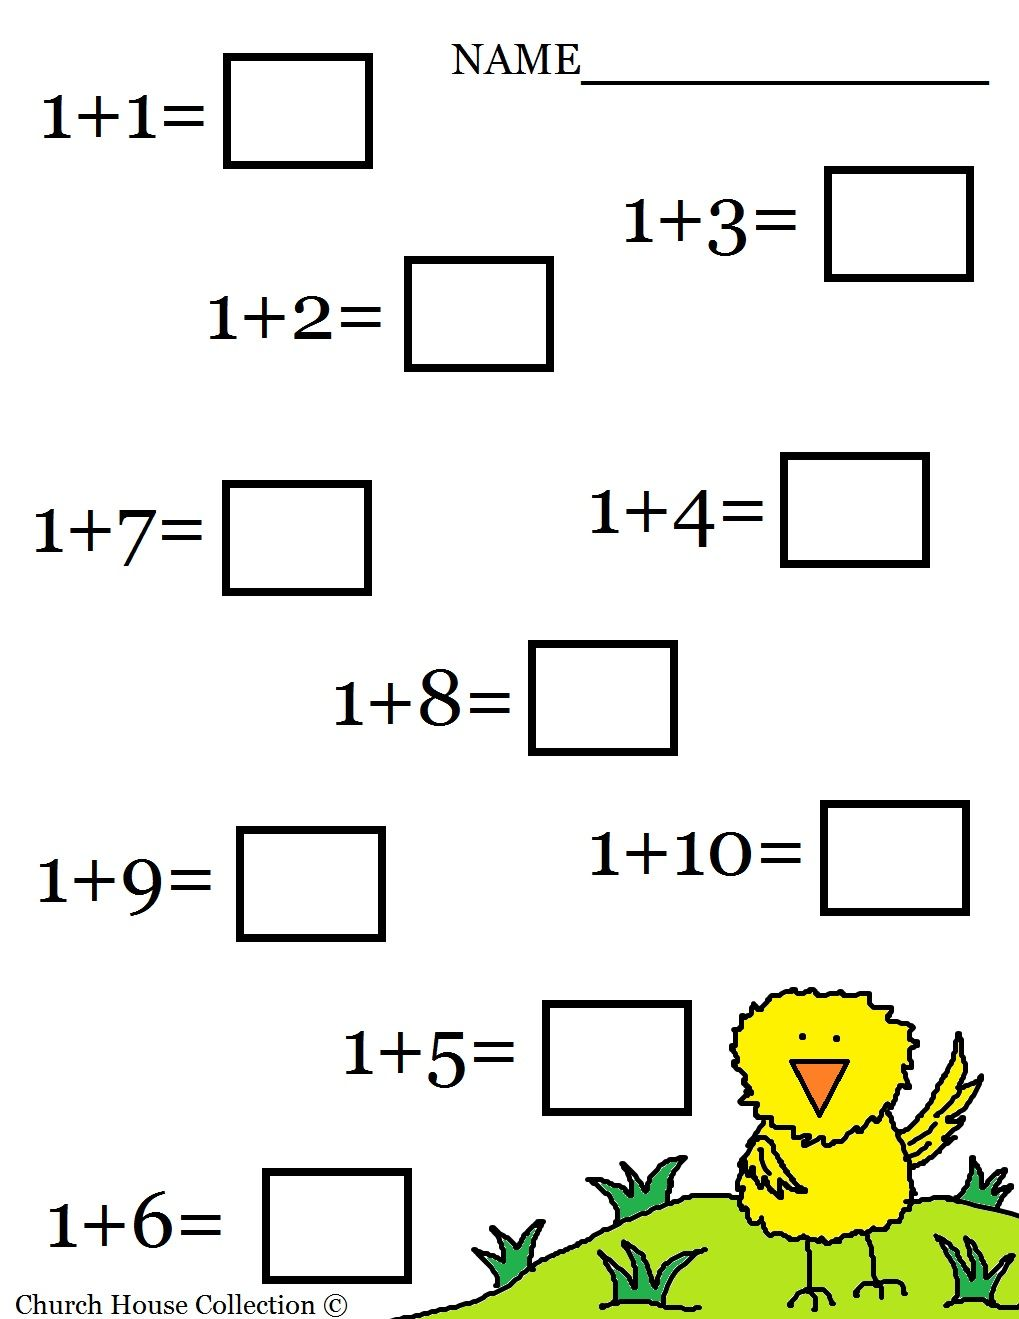 Aldiablosus  Winsome  Images About Worksheets  Math On Pinterest  Math Sheets  With Excellent  Images About Worksheets  Math On Pinterest  Math Sheets Math Worksheets For Kindergarten And Simple Addition With Delectable Worksheet Adjective Also Th Grade Activity Worksheets In Addition Worksheet On Rounding And Worksheet Free Download As Well As Tr Blends Worksheets Additionally Comprehension Worksheets Uk From Pinterestcom With Aldiablosus  Excellent  Images About Worksheets  Math On Pinterest  Math Sheets  With Delectable  Images About Worksheets  Math On Pinterest  Math Sheets Math Worksheets For Kindergarten And Simple Addition And Winsome Worksheet Adjective Also Th Grade Activity Worksheets In Addition Worksheet On Rounding From Pinterestcom